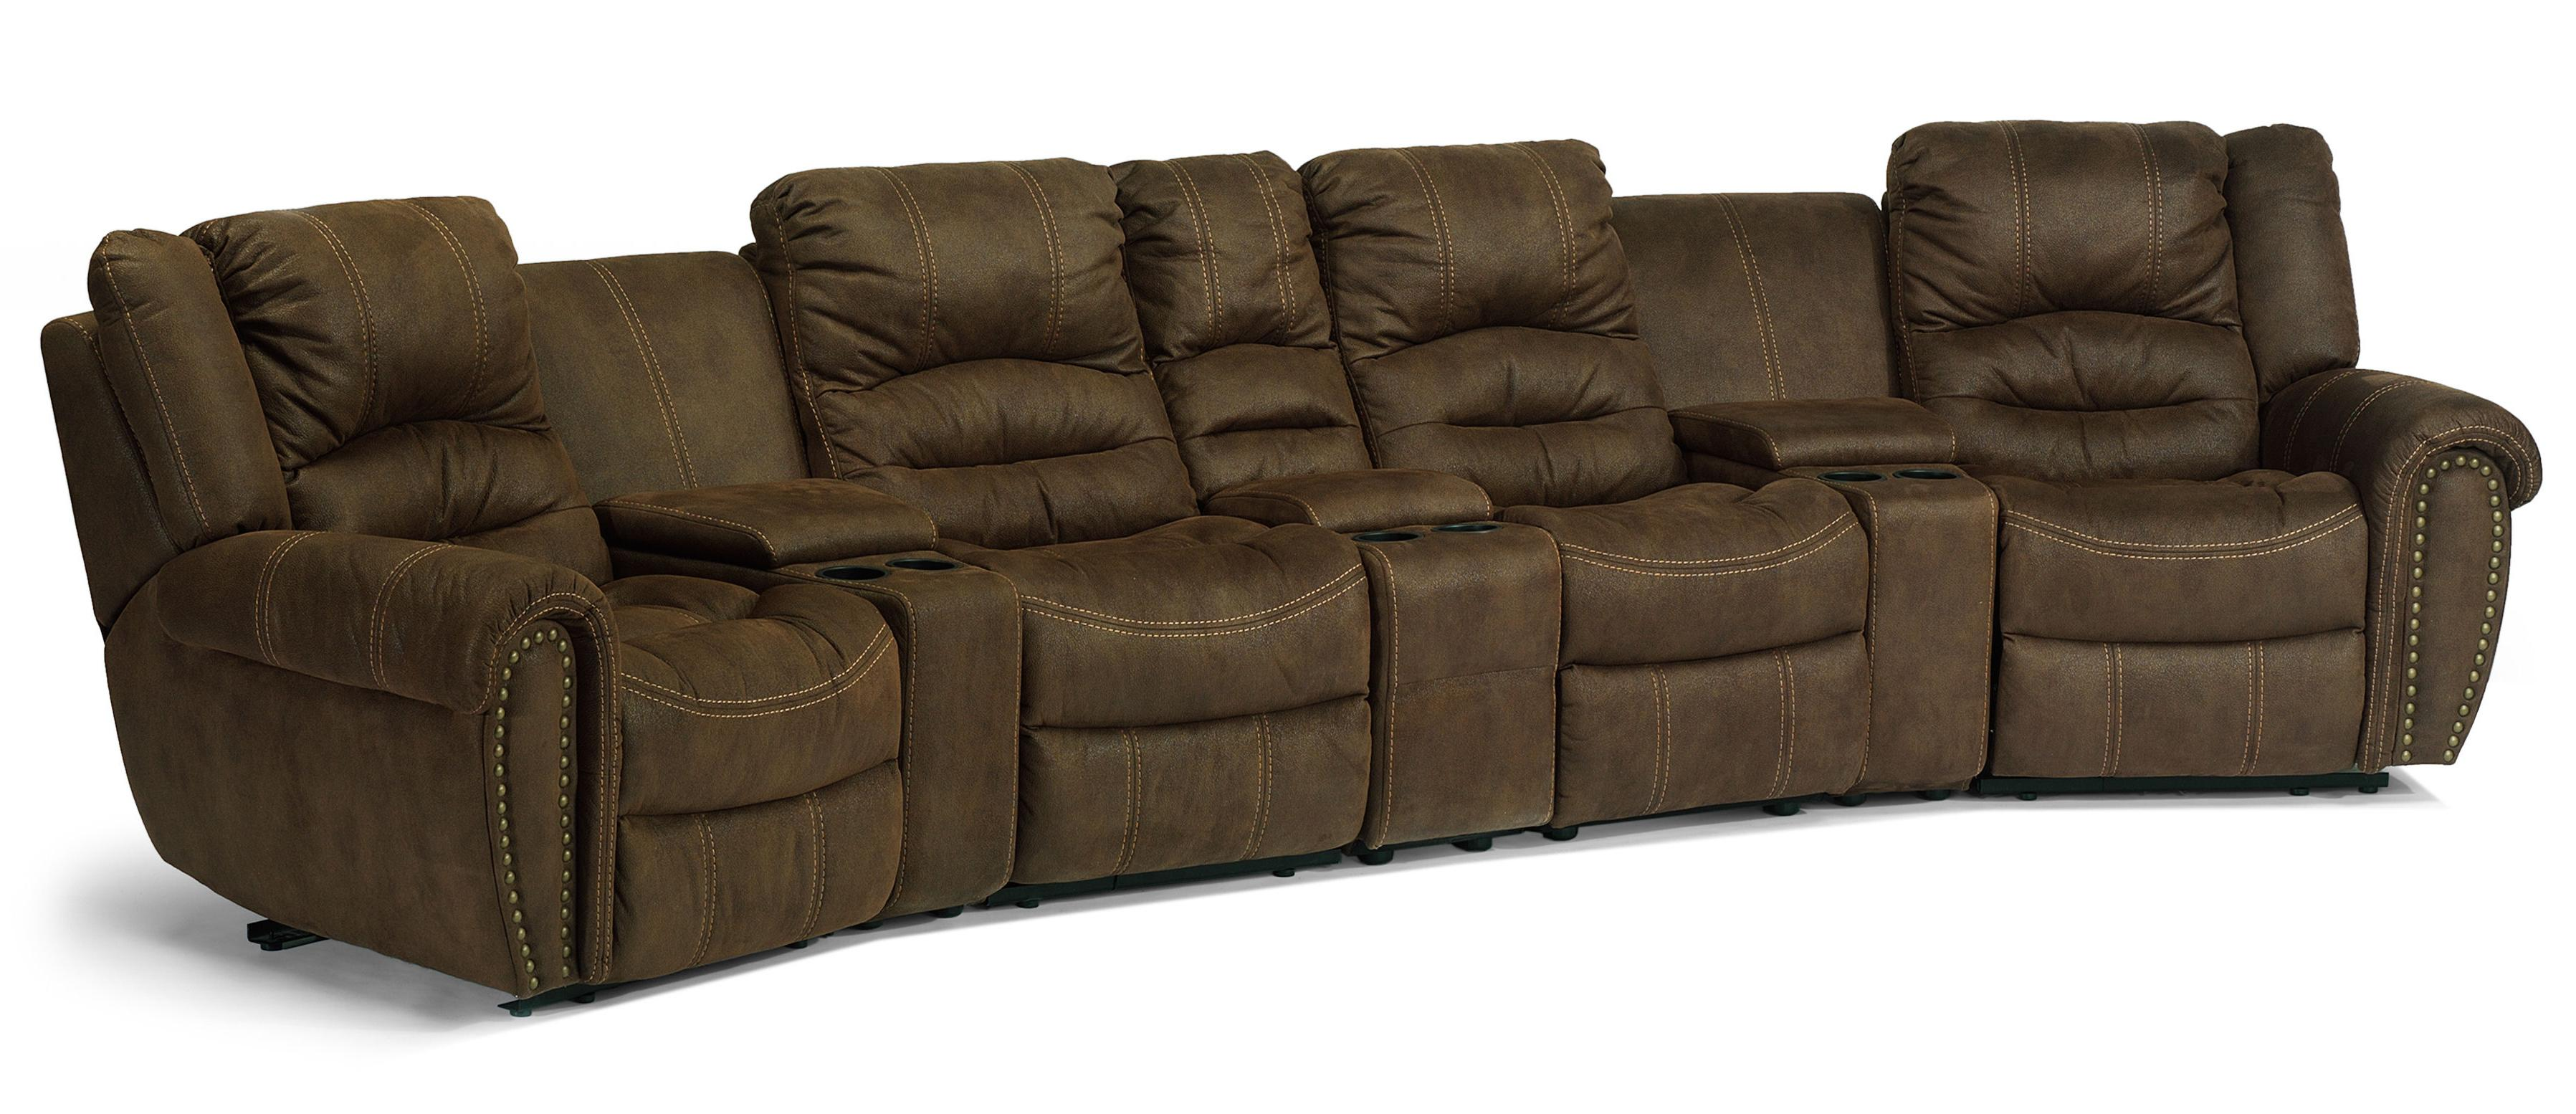 reclining sofa leather seat foam density curved recliner kenwood